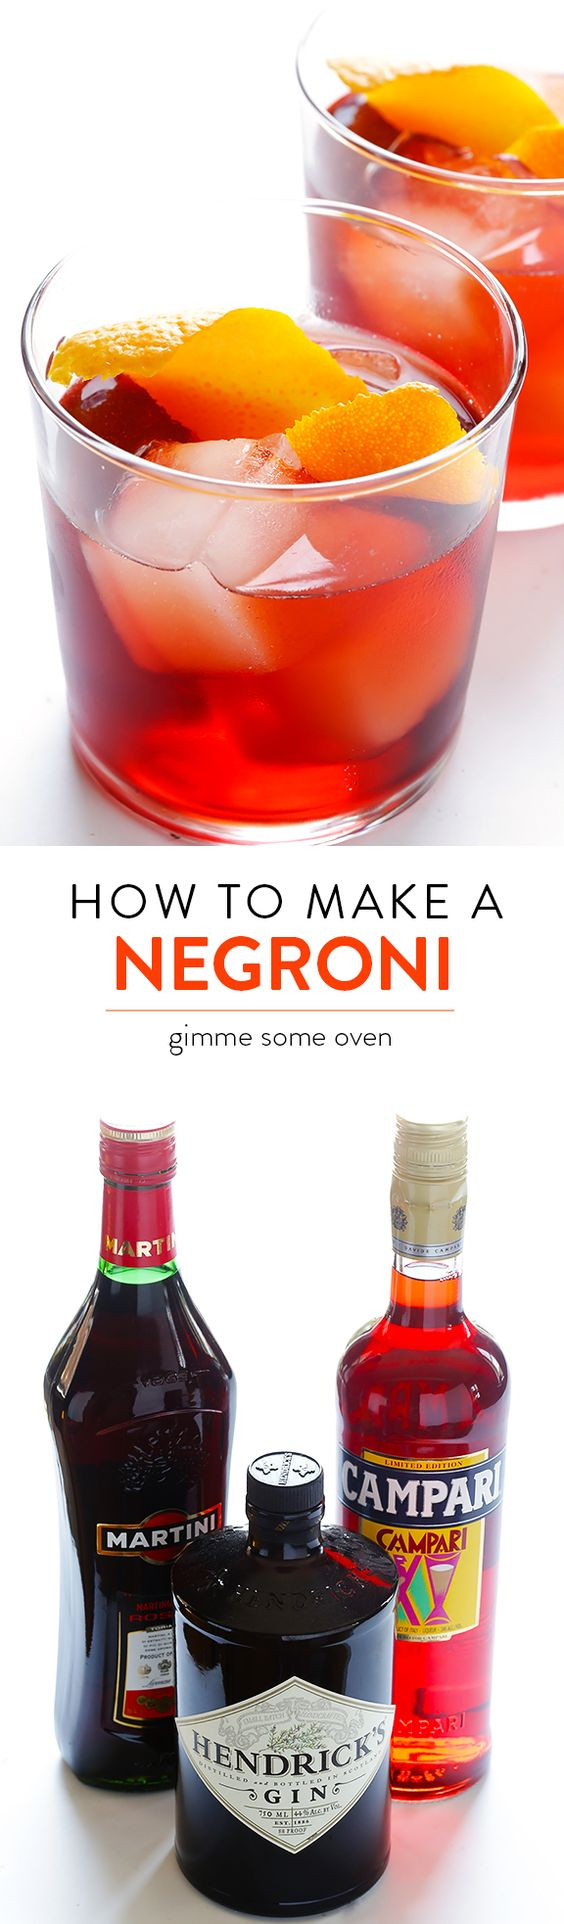 Learn how to make a classic Negroni cocktail with just 4 ingredients | gimmesomeoven.com